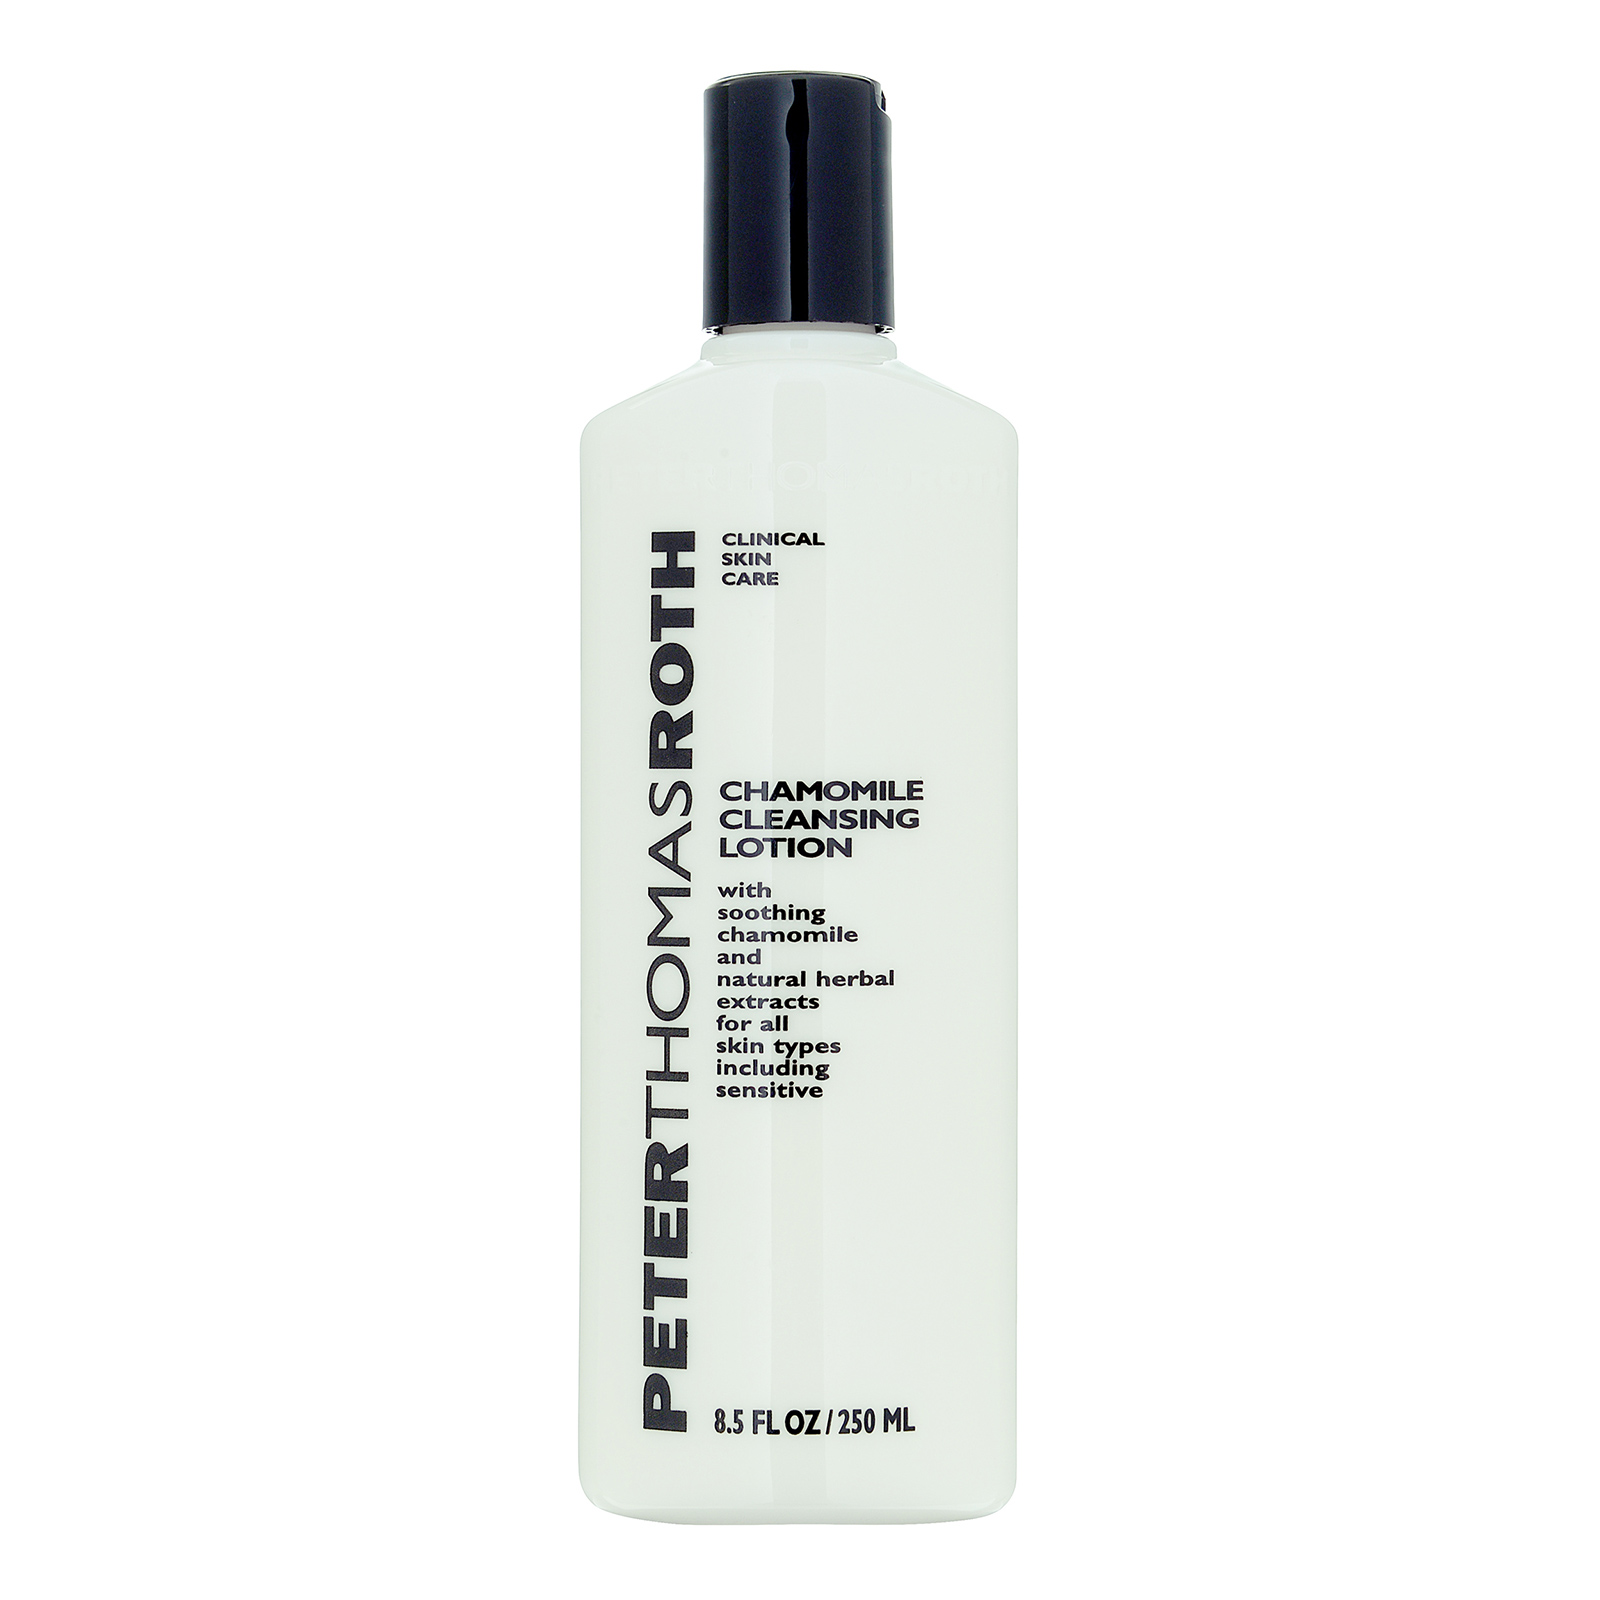 Peter Thomas Roth  Chamomile Cleansing Lotion (For All Skin Types) 8.5oz, 250ml